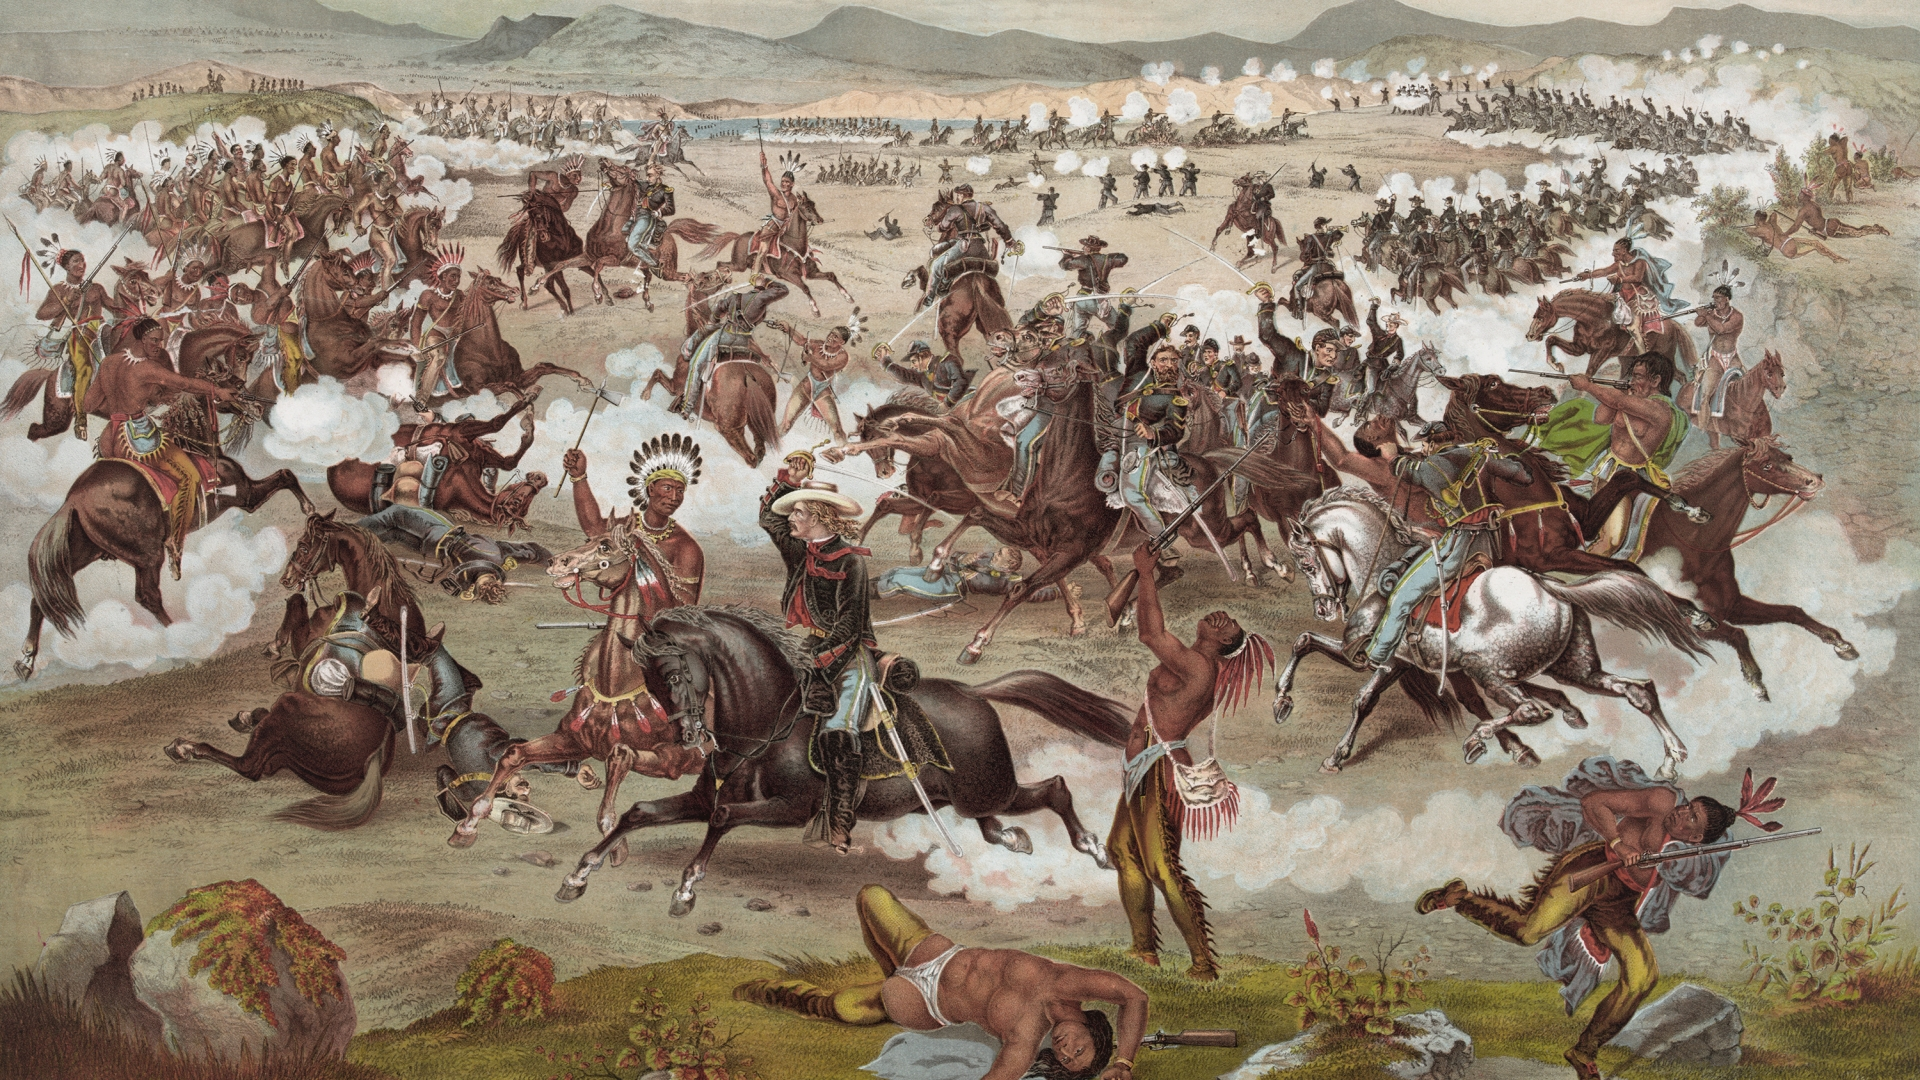 Custer's Last Stand from the Battle of Little Bighorn. (Credit: GraphicaArtis/Getty Images)